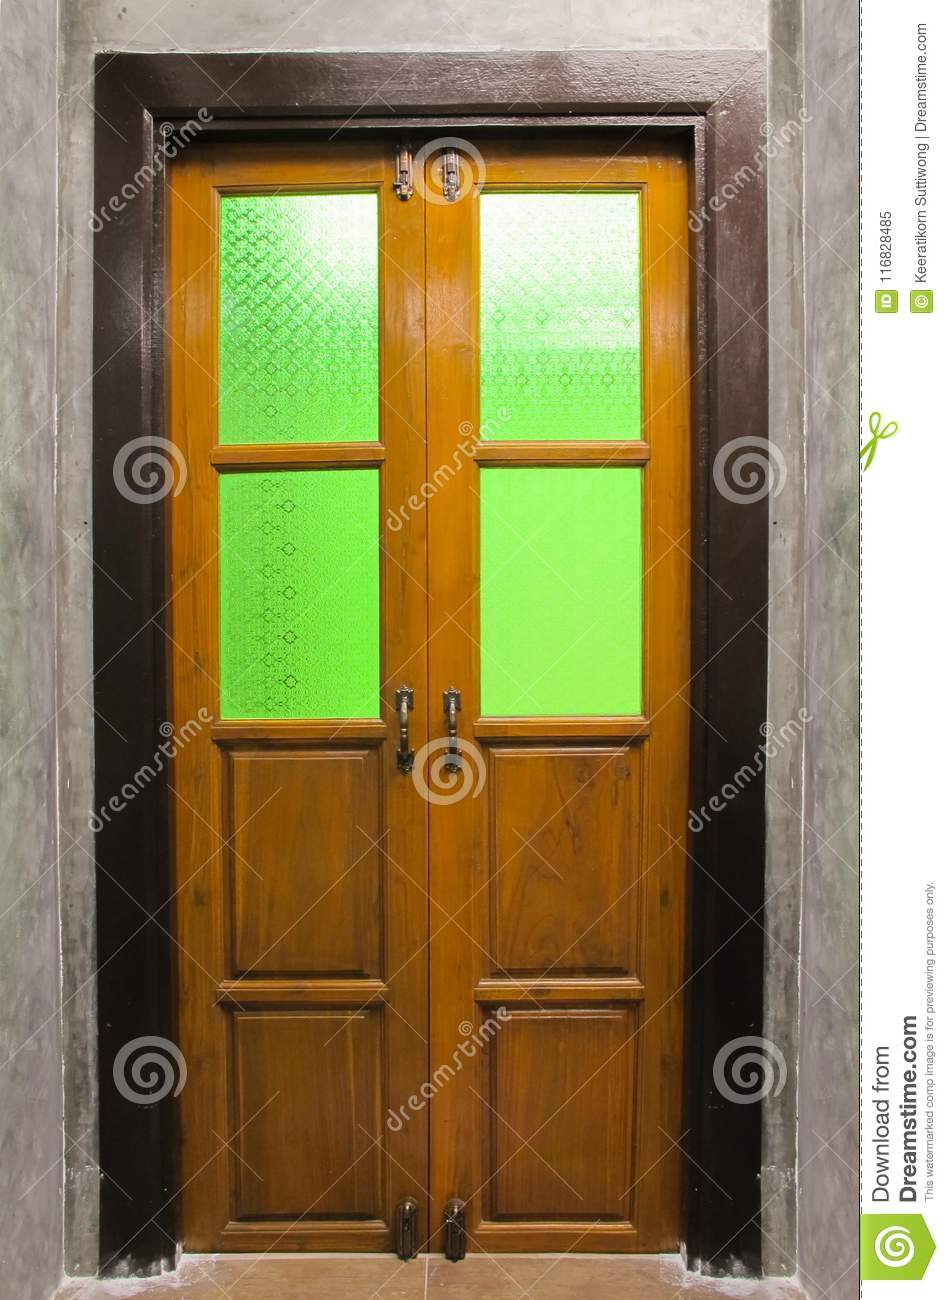 Vintage Wooden Door With Stained Glass Stock Image Image Of Gate